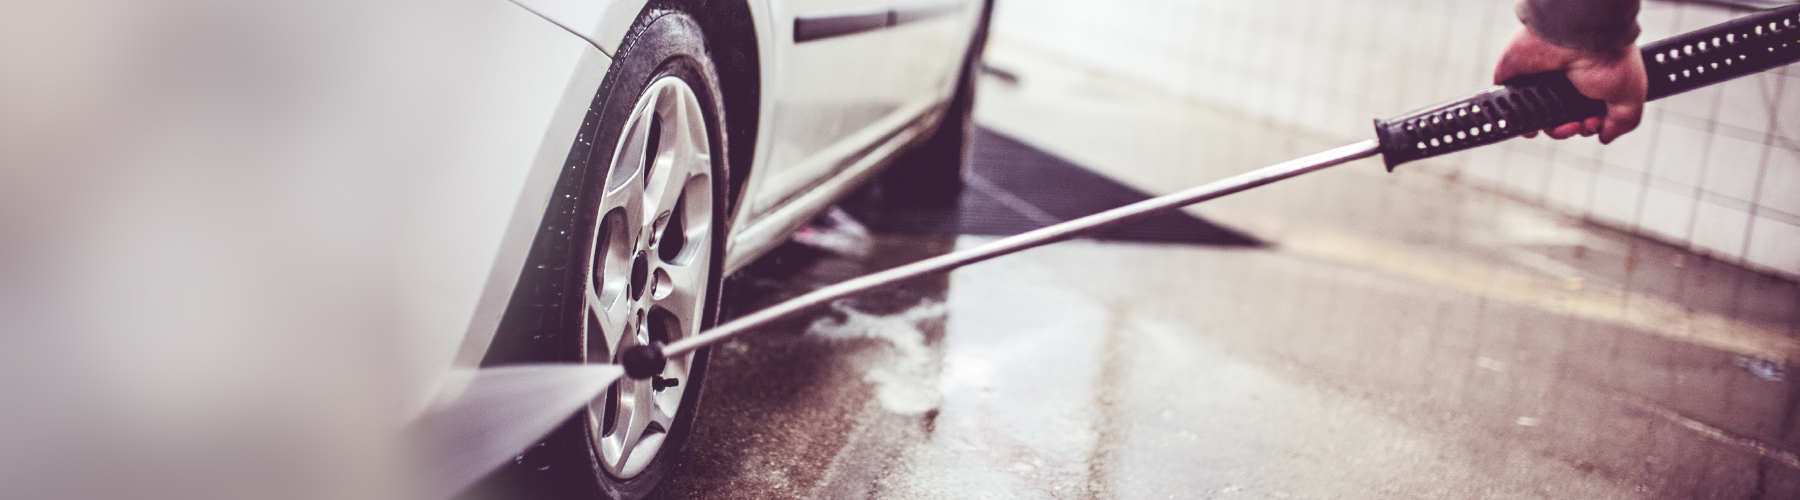 Car wheel cleaning with water spary